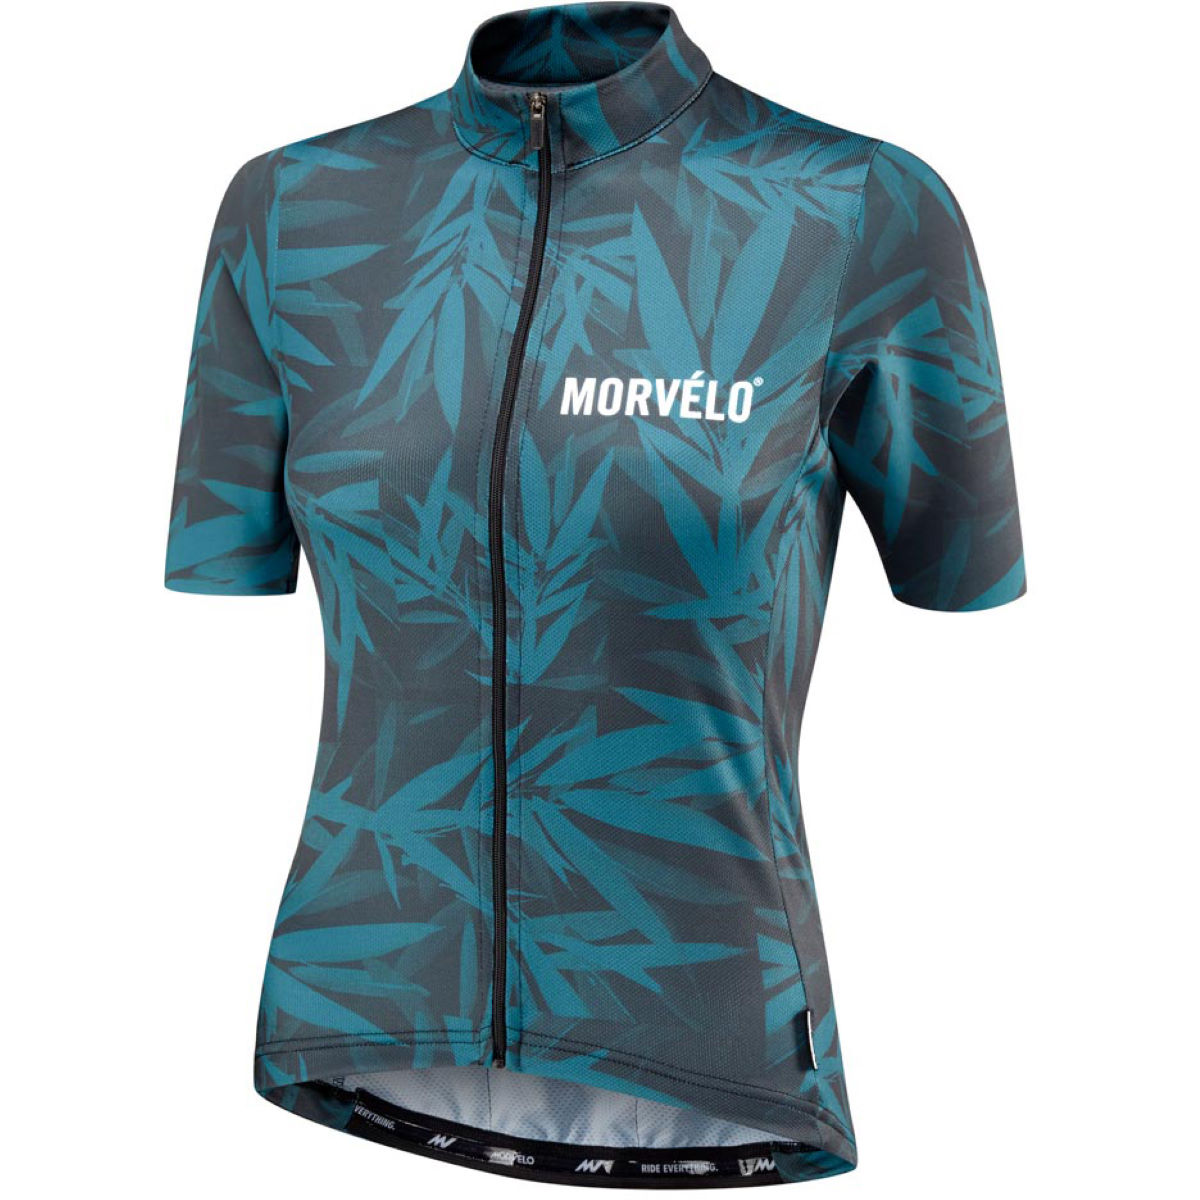 Morvelo Women's Bluegrass Short Sleeve Jersey - Maillots